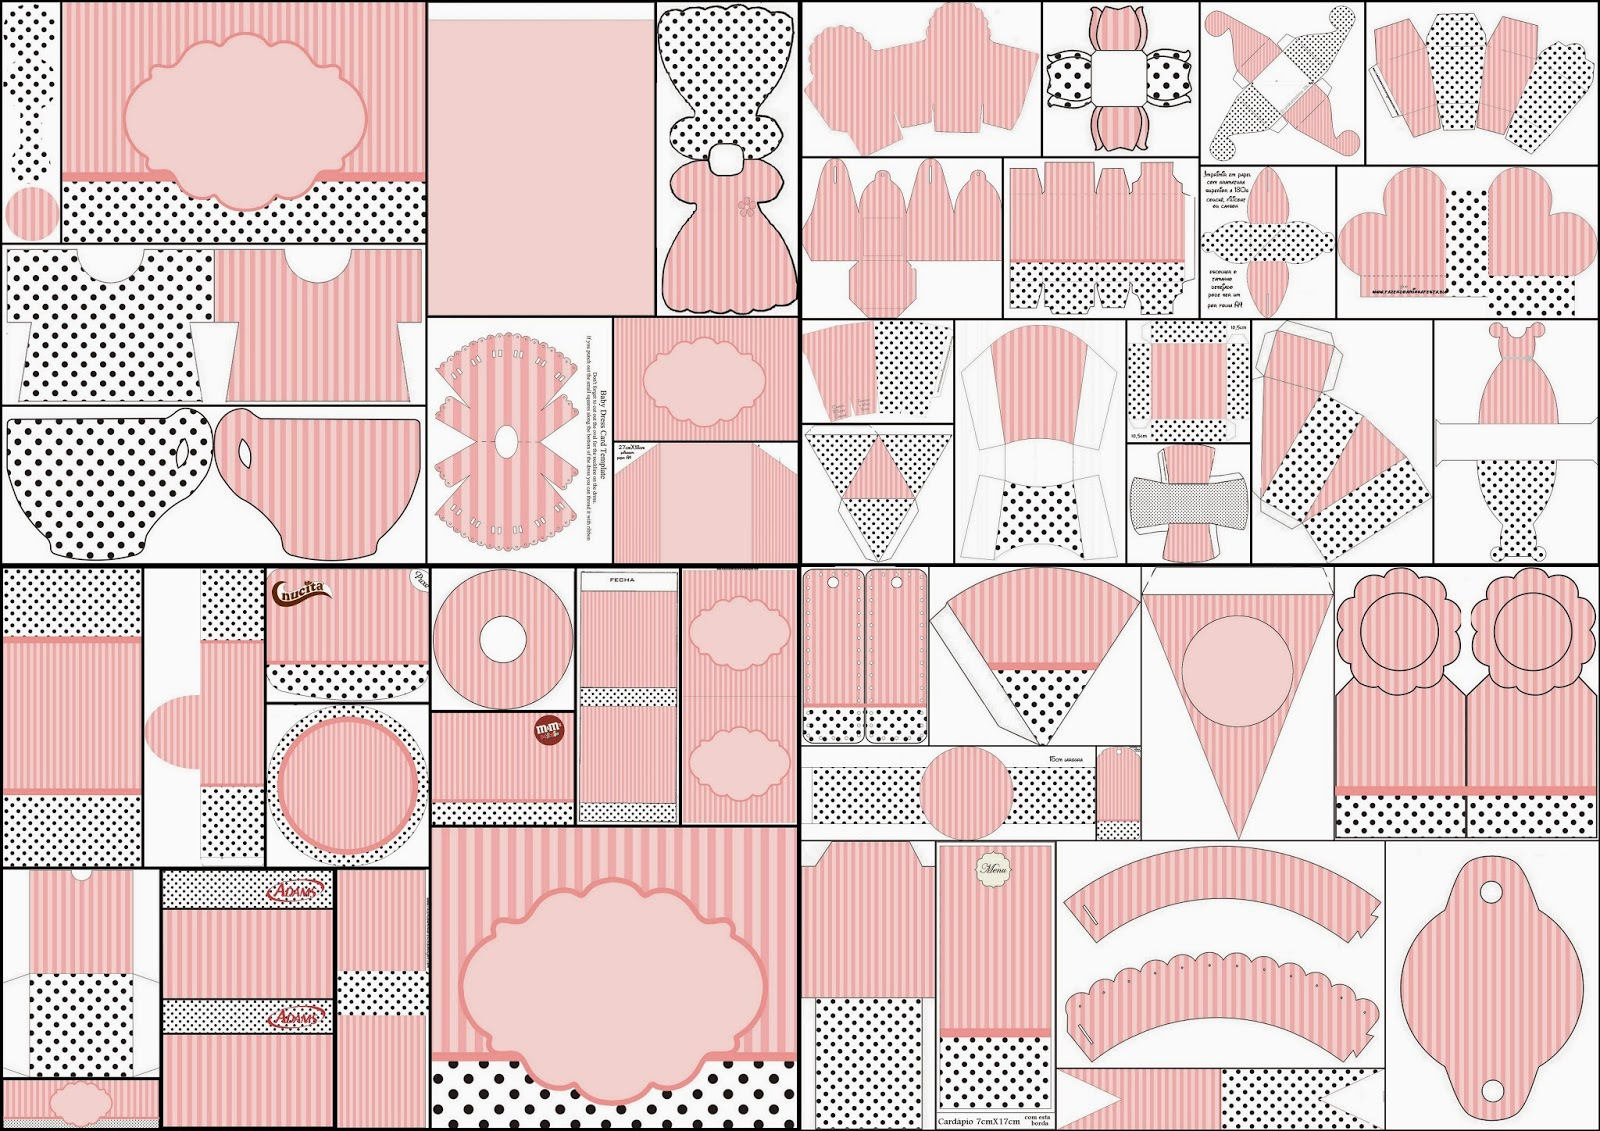 Free Printable Kit with Pink Stripes and Black Polka Dots.